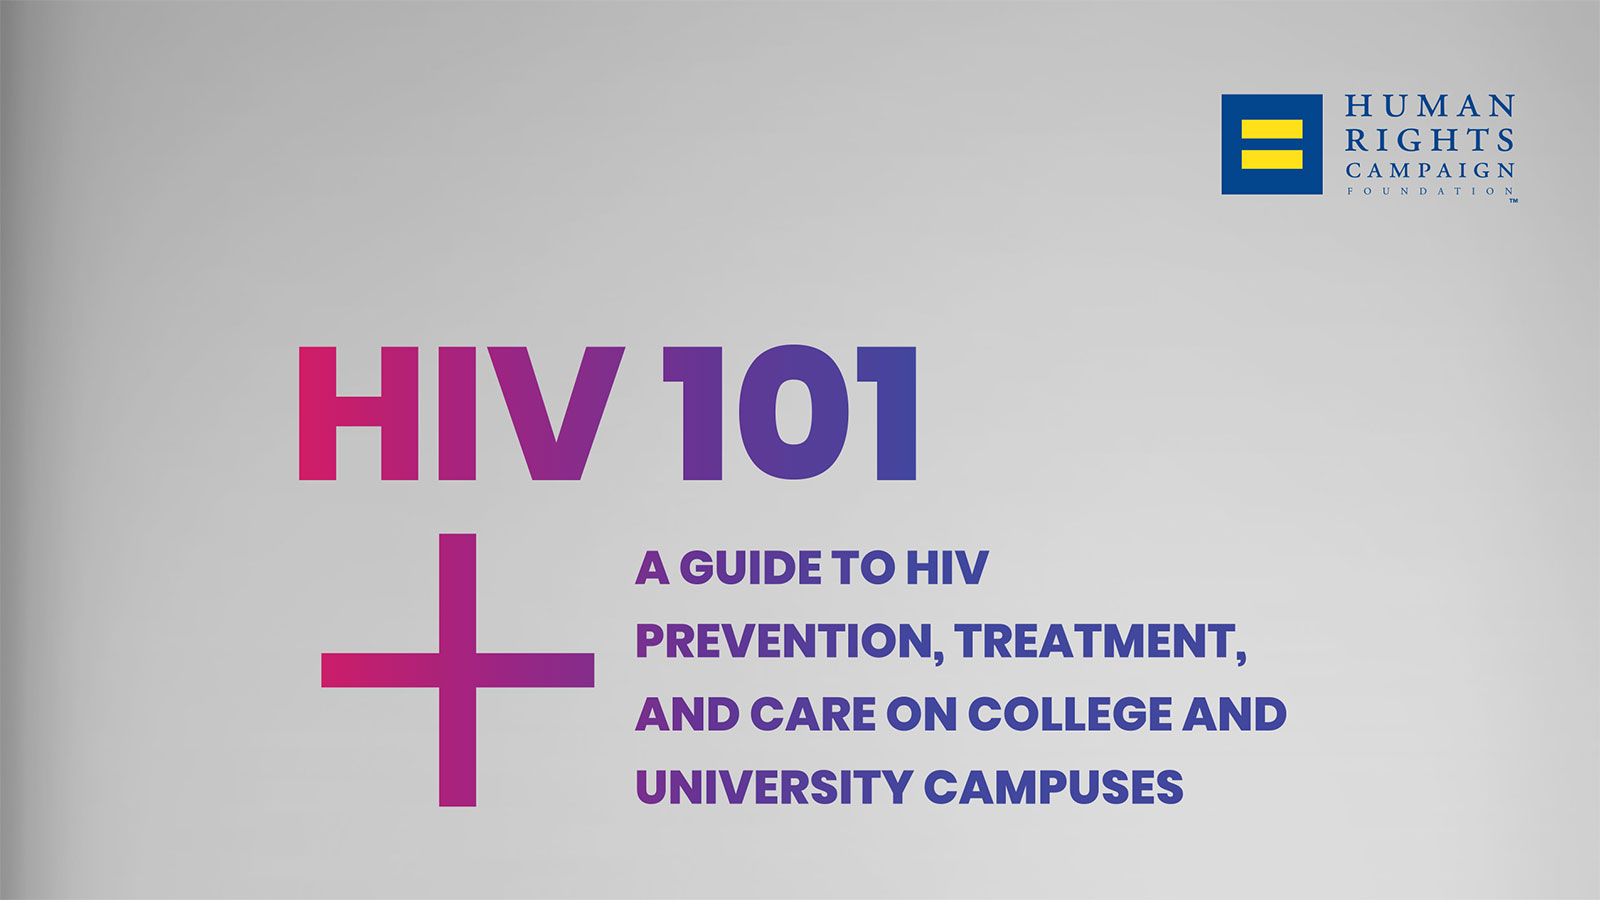 HRC Releases New Comprehensive Guide for HIV Prevention, Treatment and Care on College Campuses